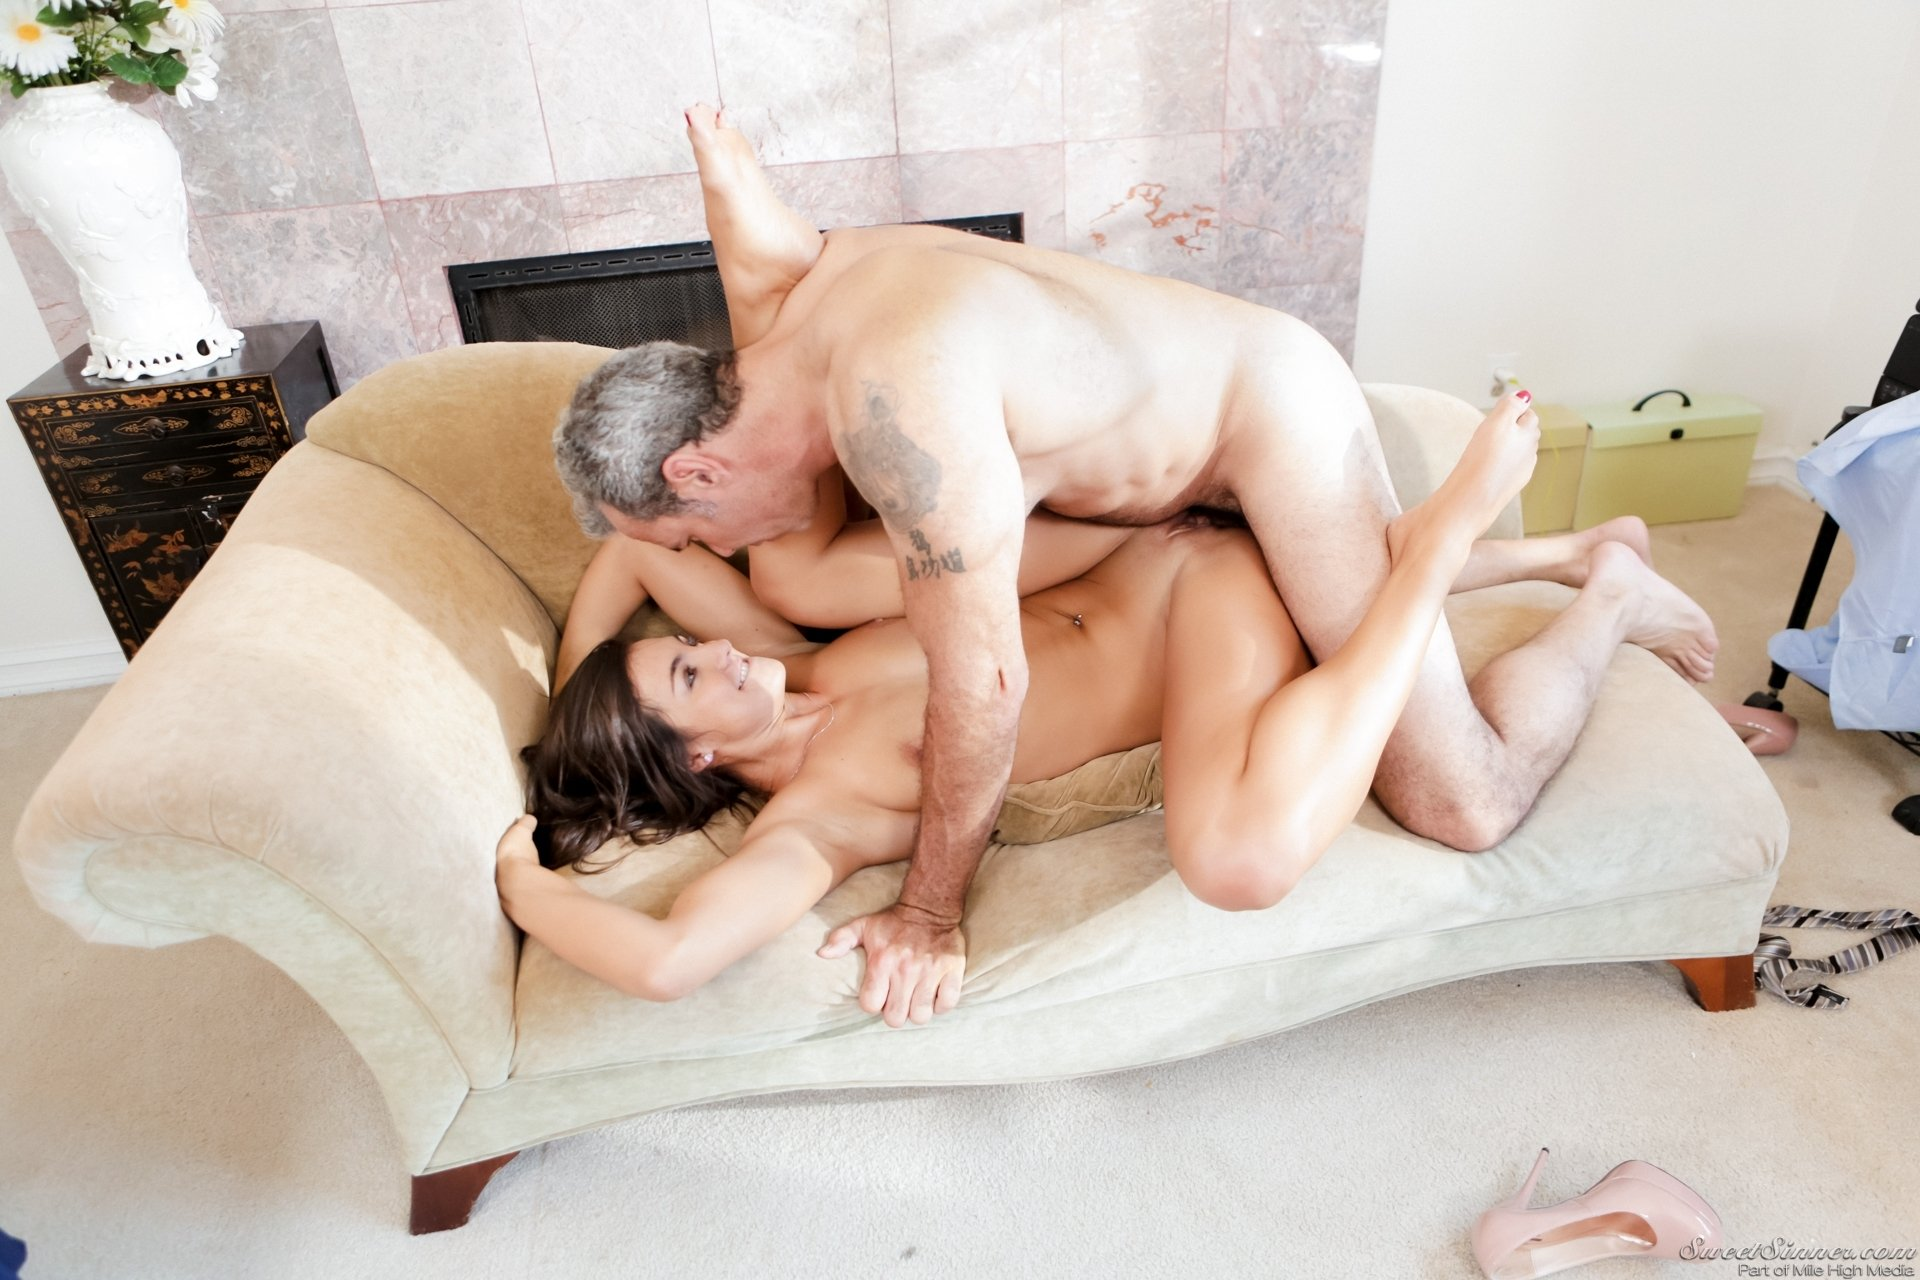 Gay hairy mature porn Free indian homemade sex movies